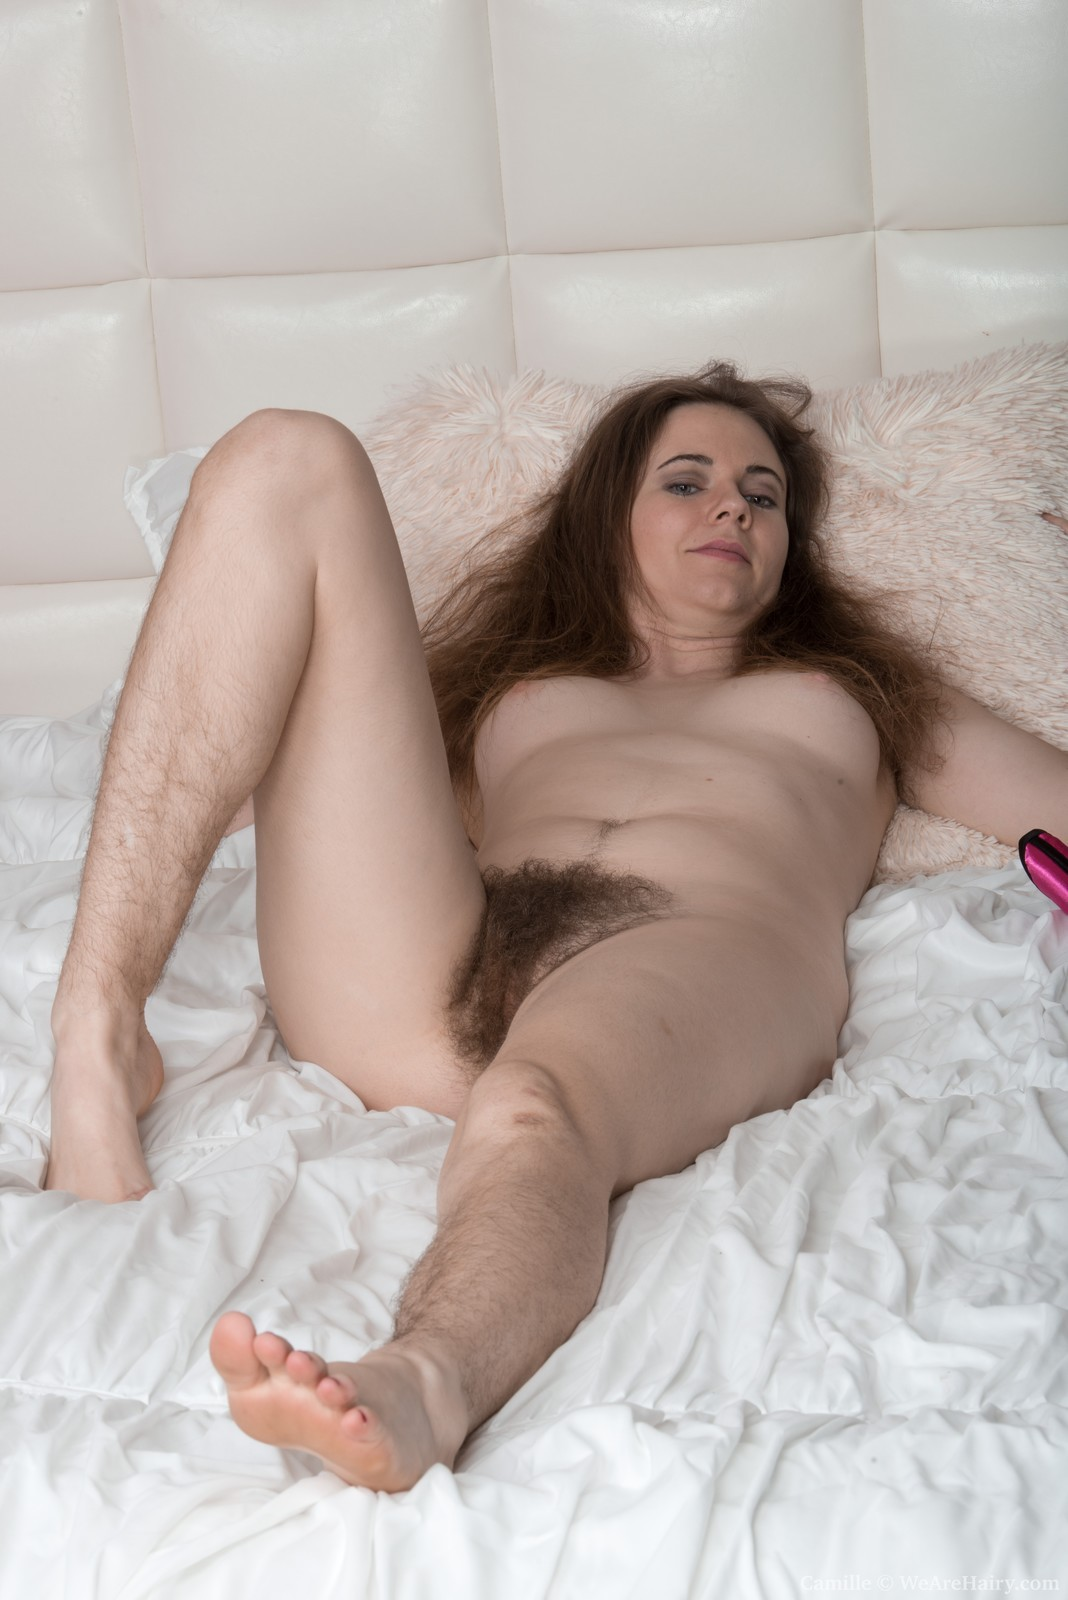 Nude women with hairy legs